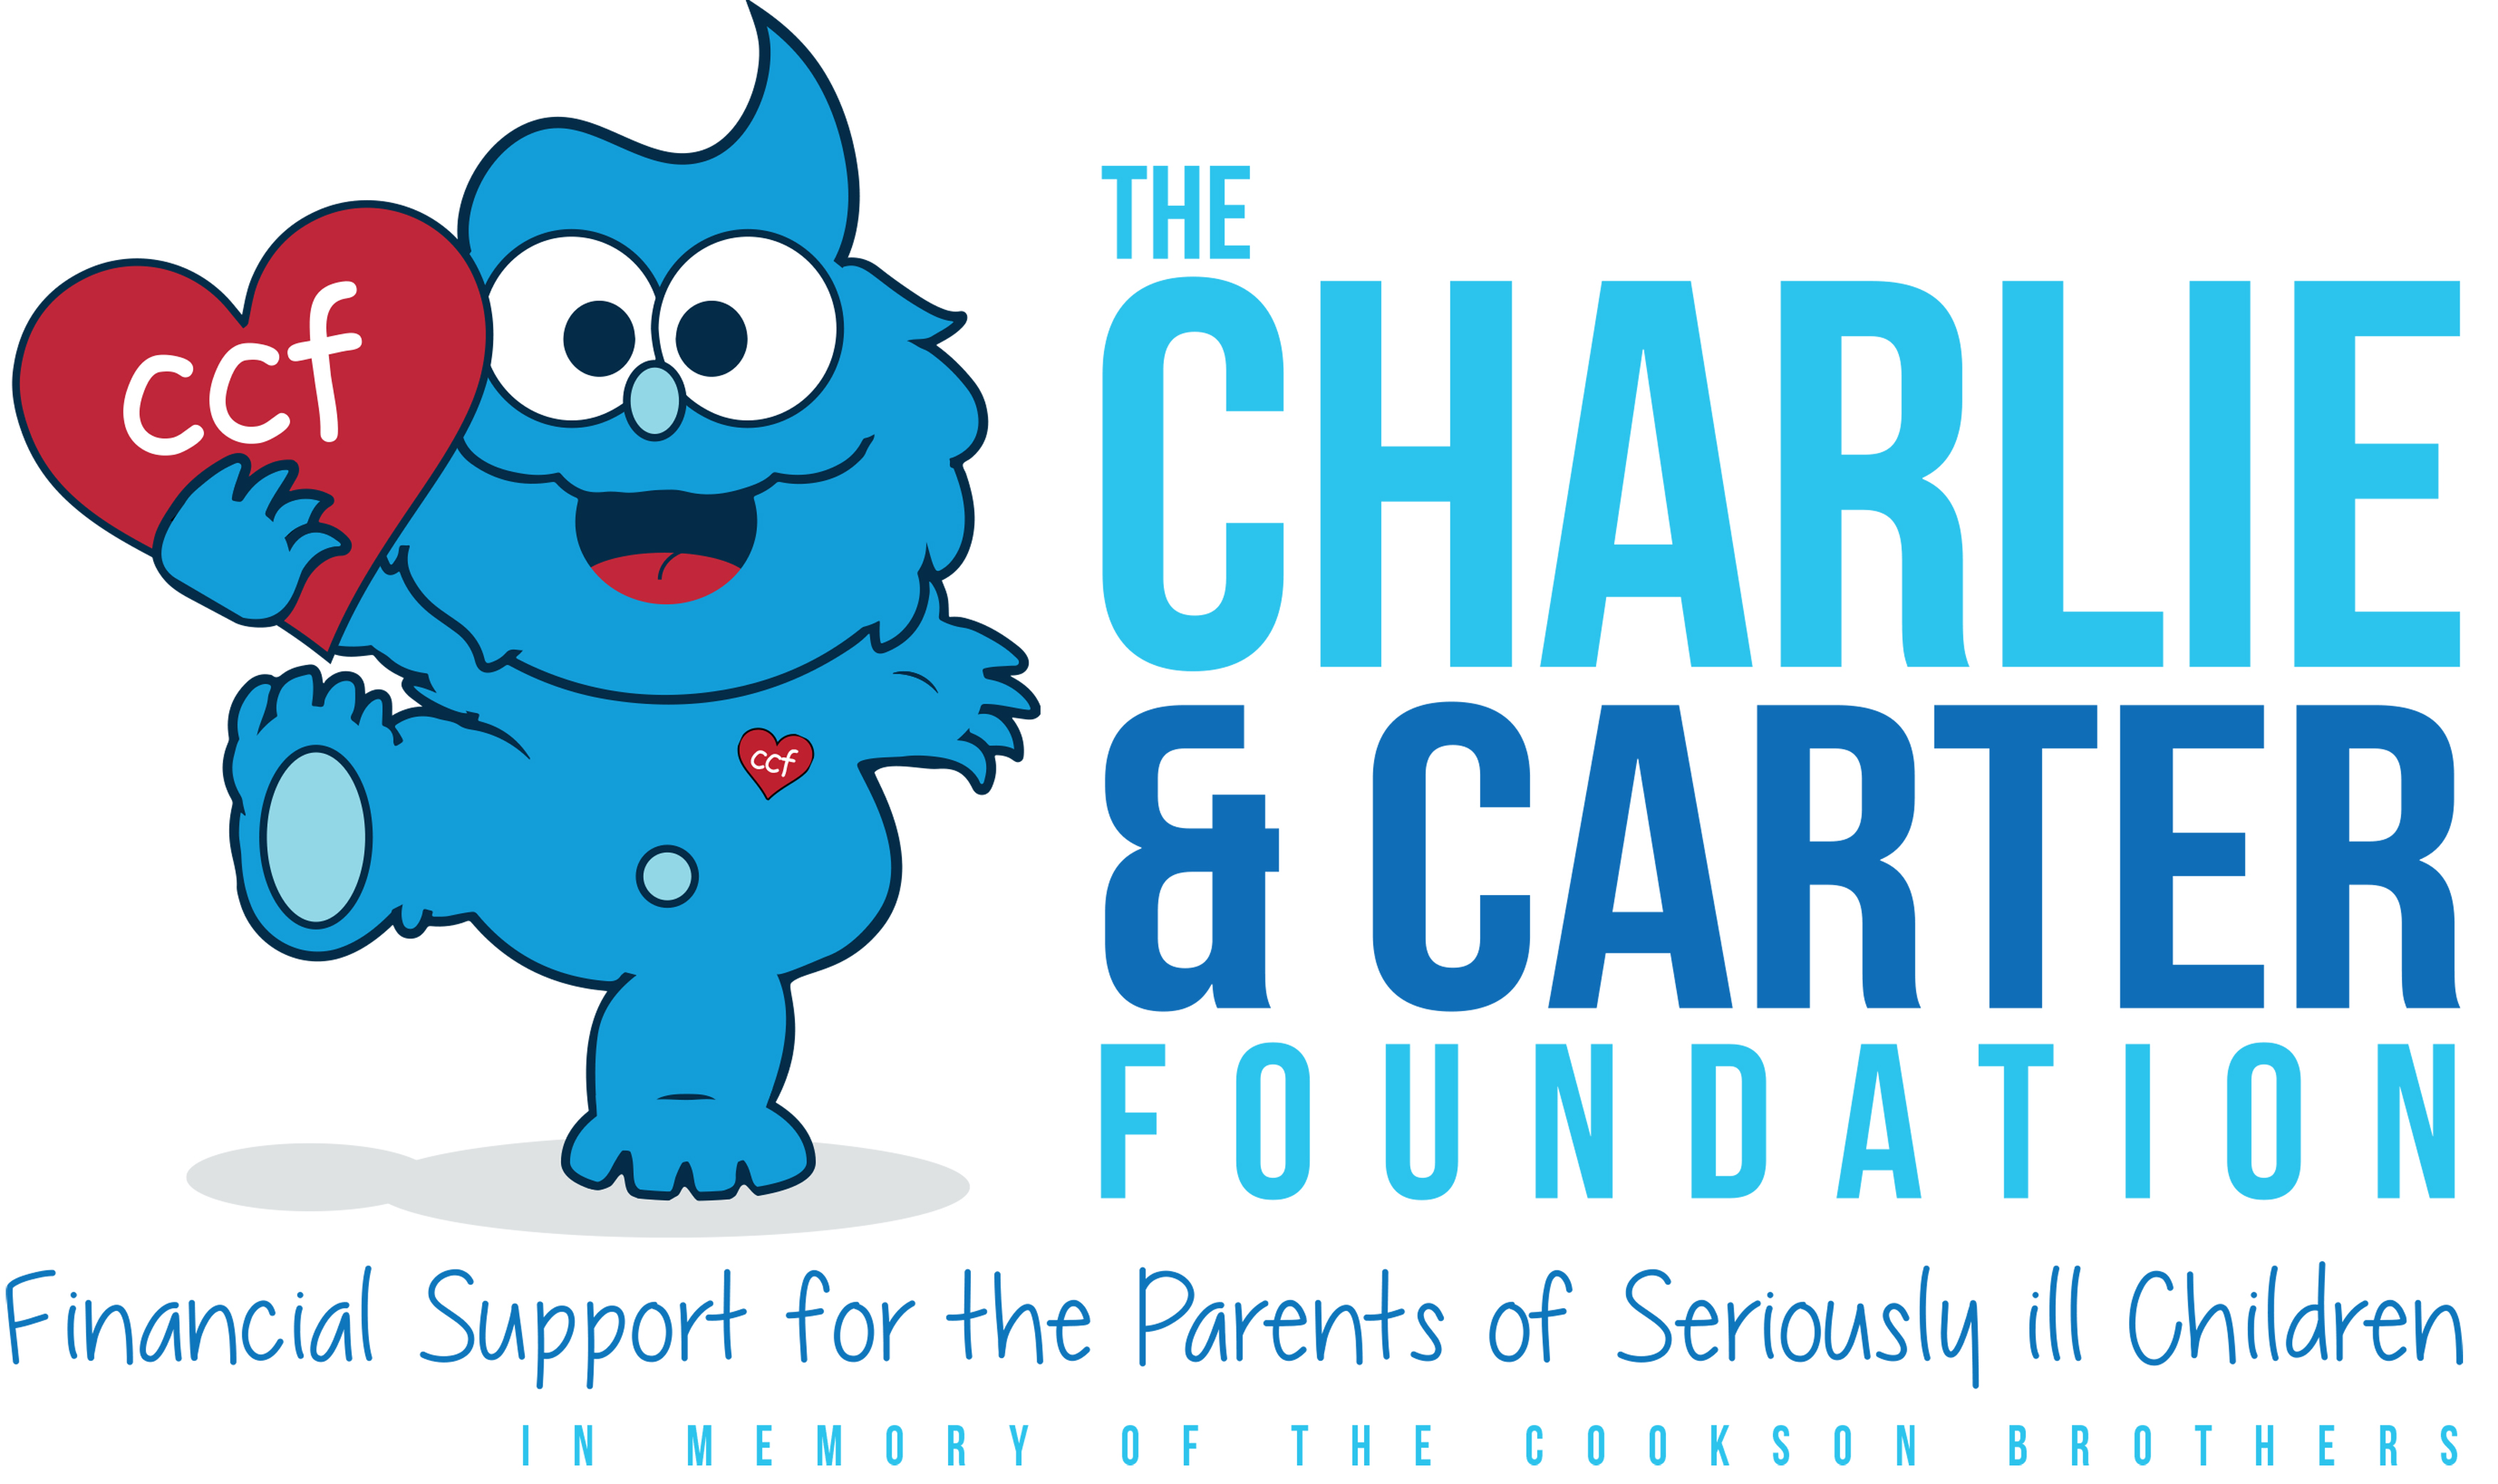 Charlie & Carter Foundation